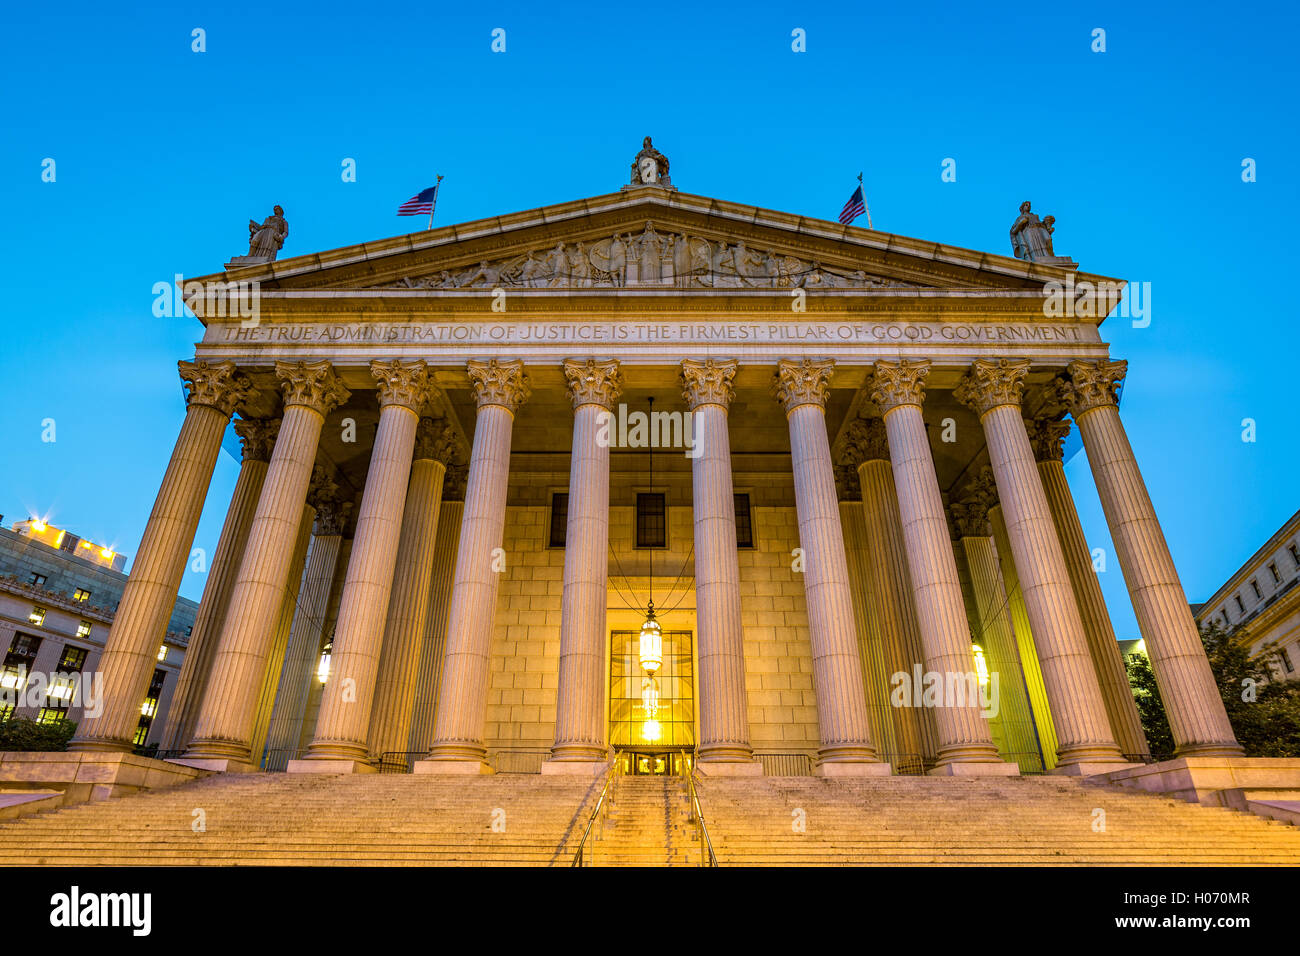 The public building of New York State Supreme Court located in the Civic Center neighborhood of Lower Manhattan - Stock Image